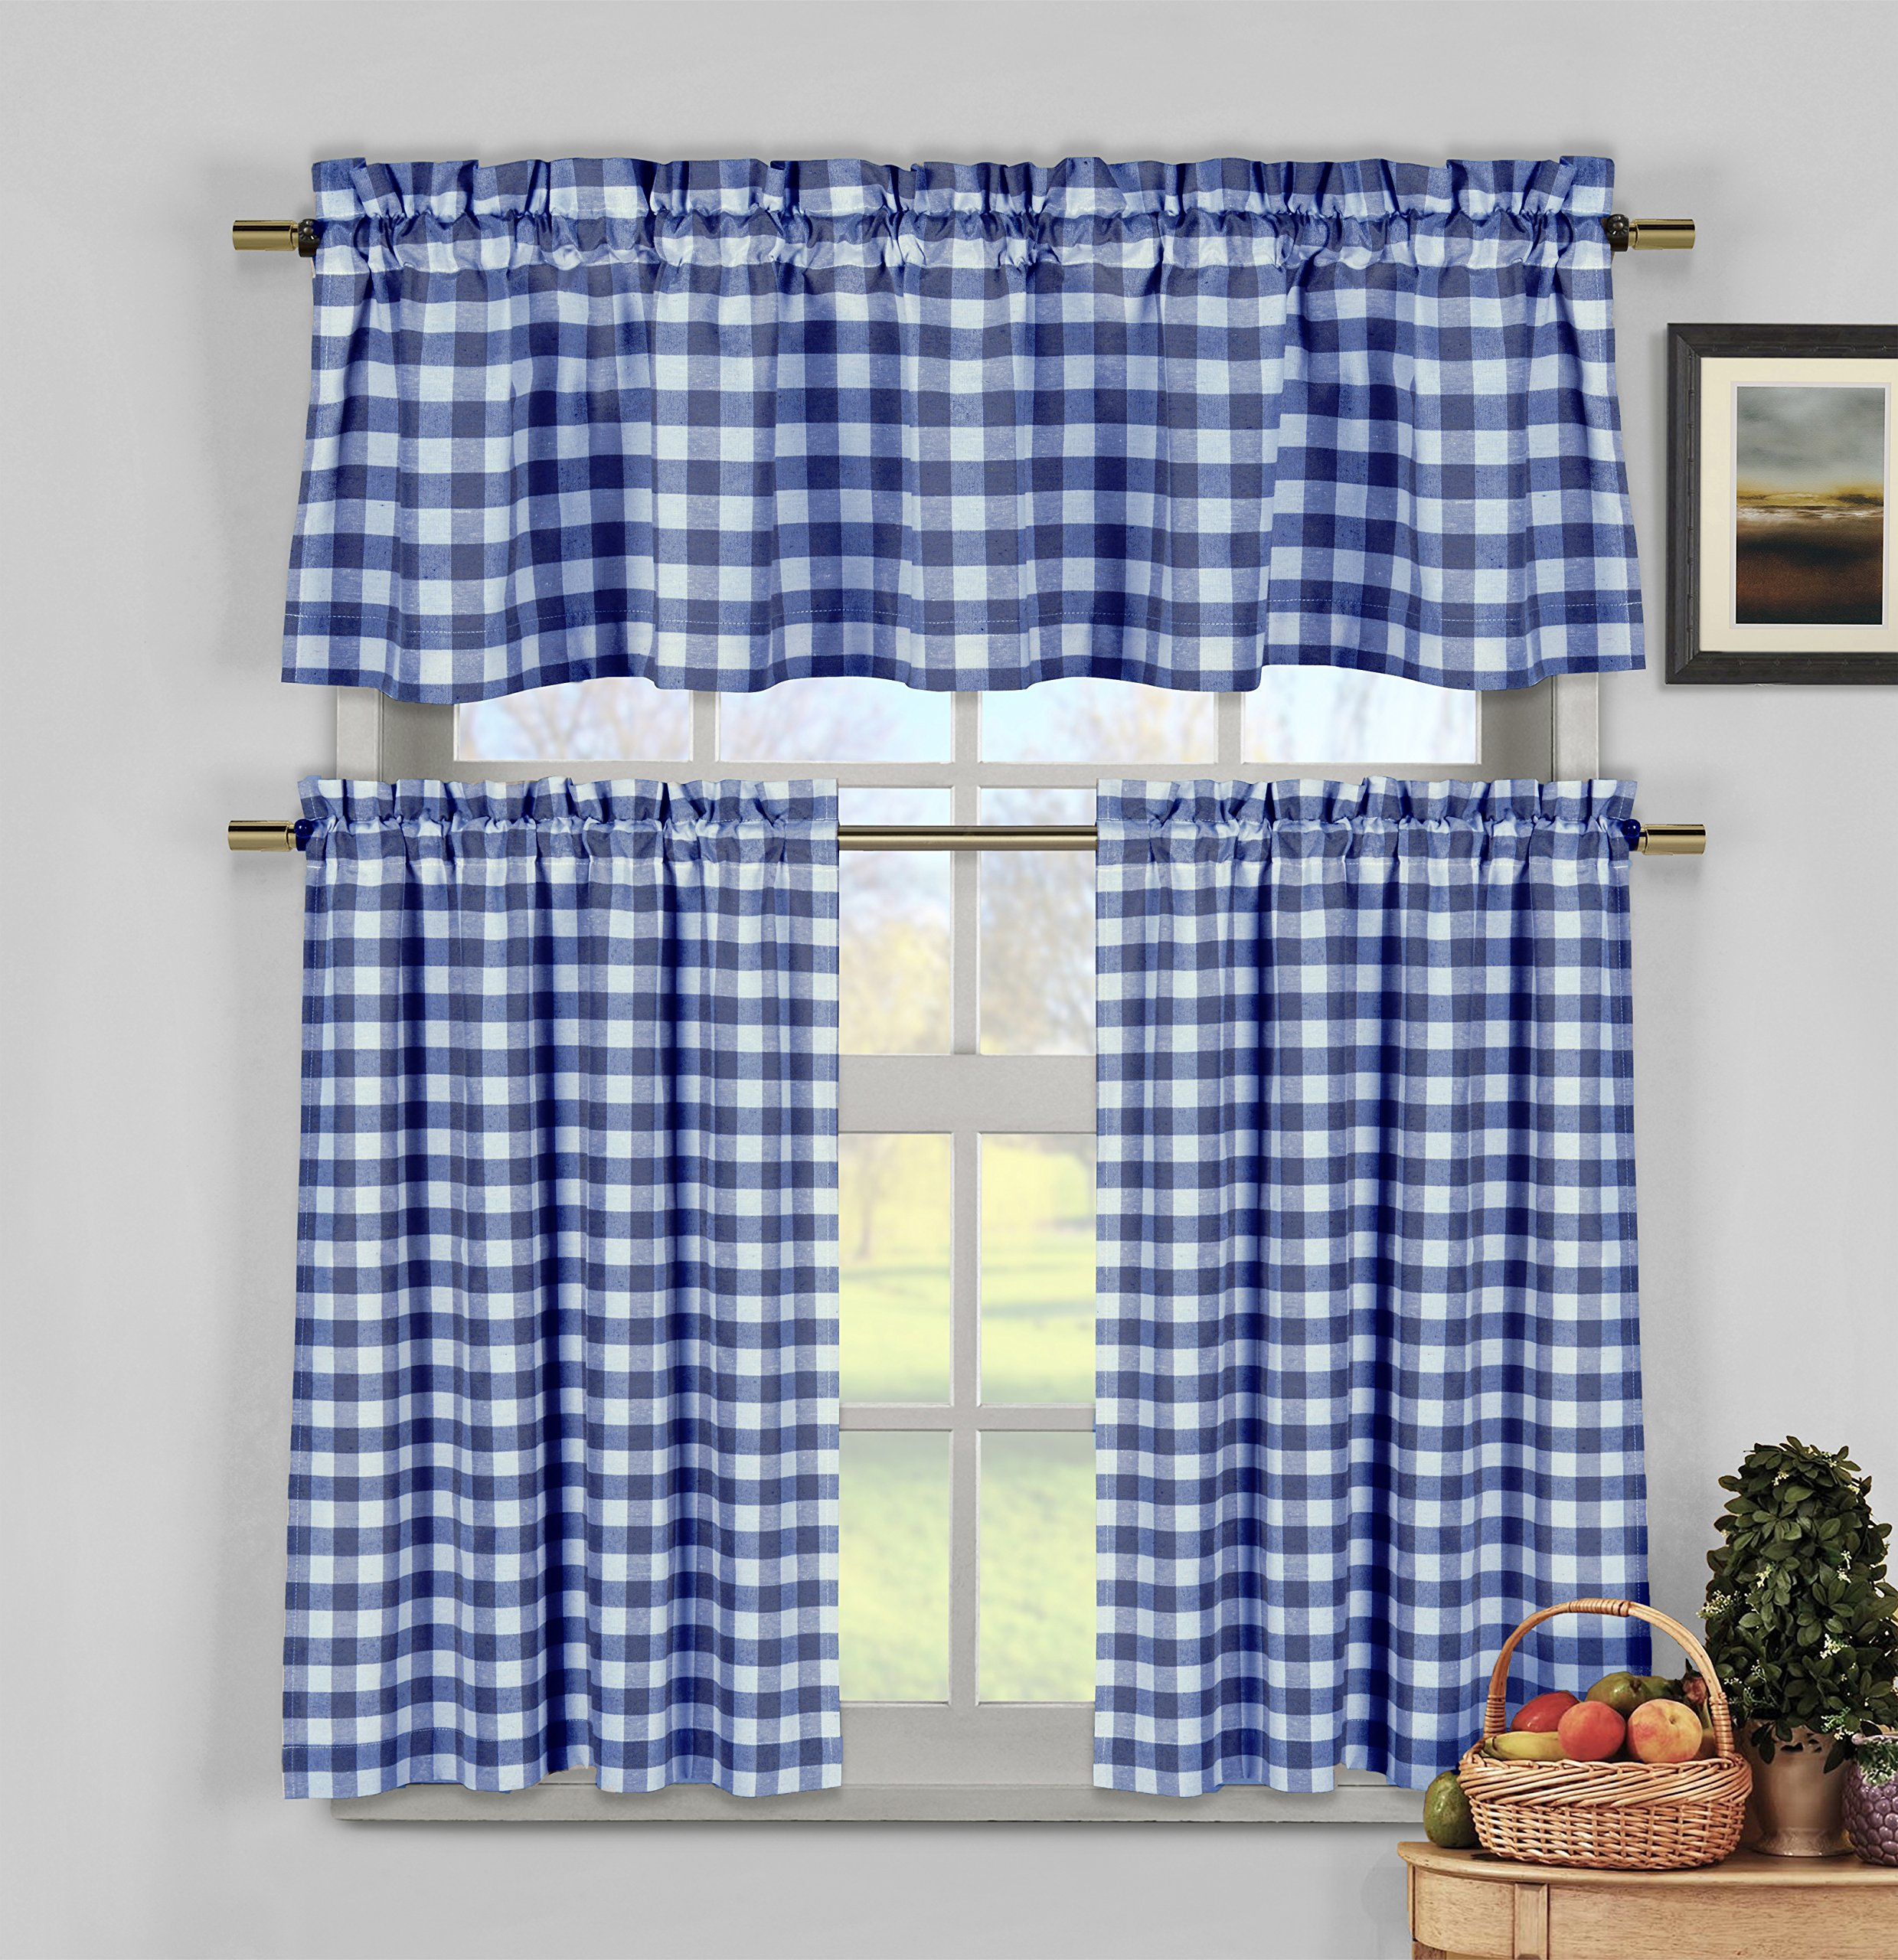 Cheap Red White Kitchen Curtains Find Red White Kitchen Curtains Deals On Line At Alibaba Com